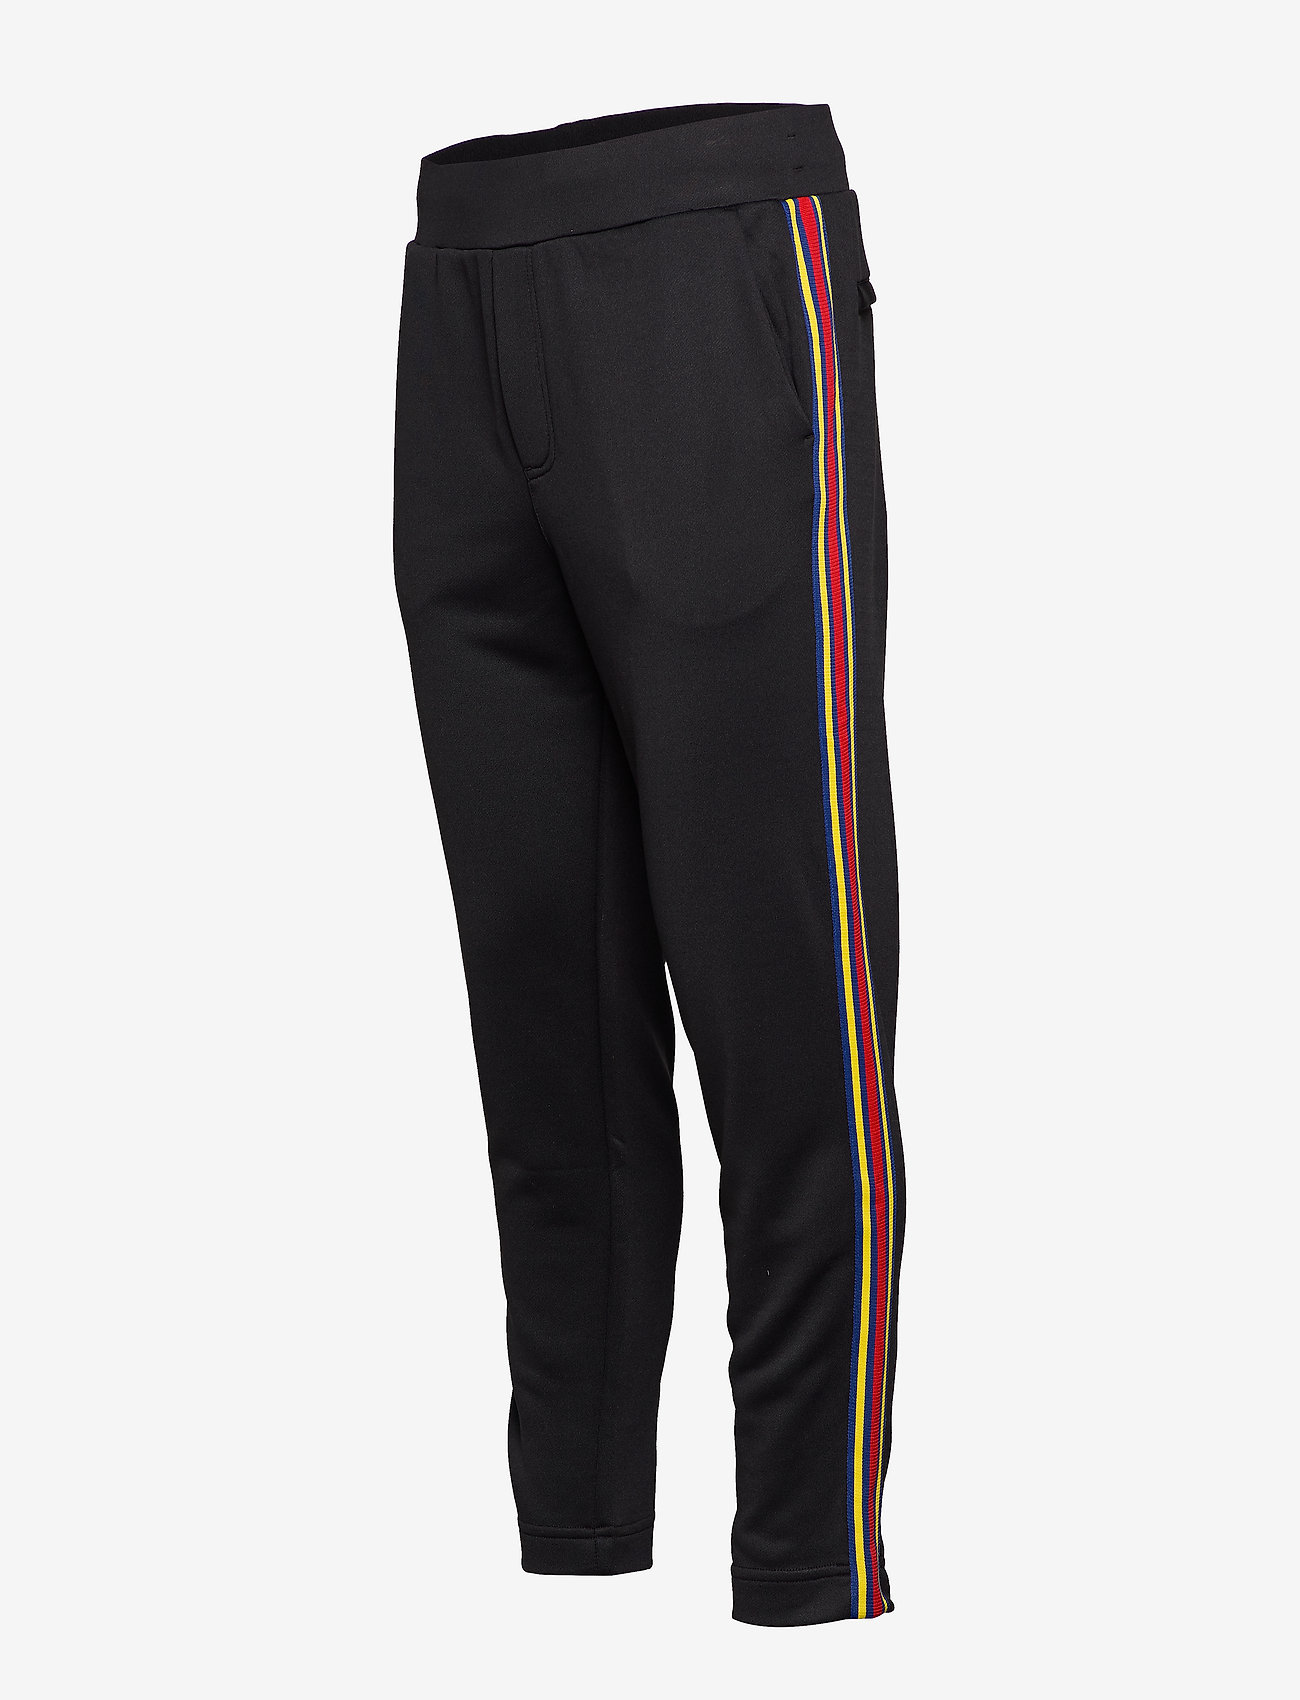 Team Borg Track Pants (Black Beauty) - Björn Borg aen7zc